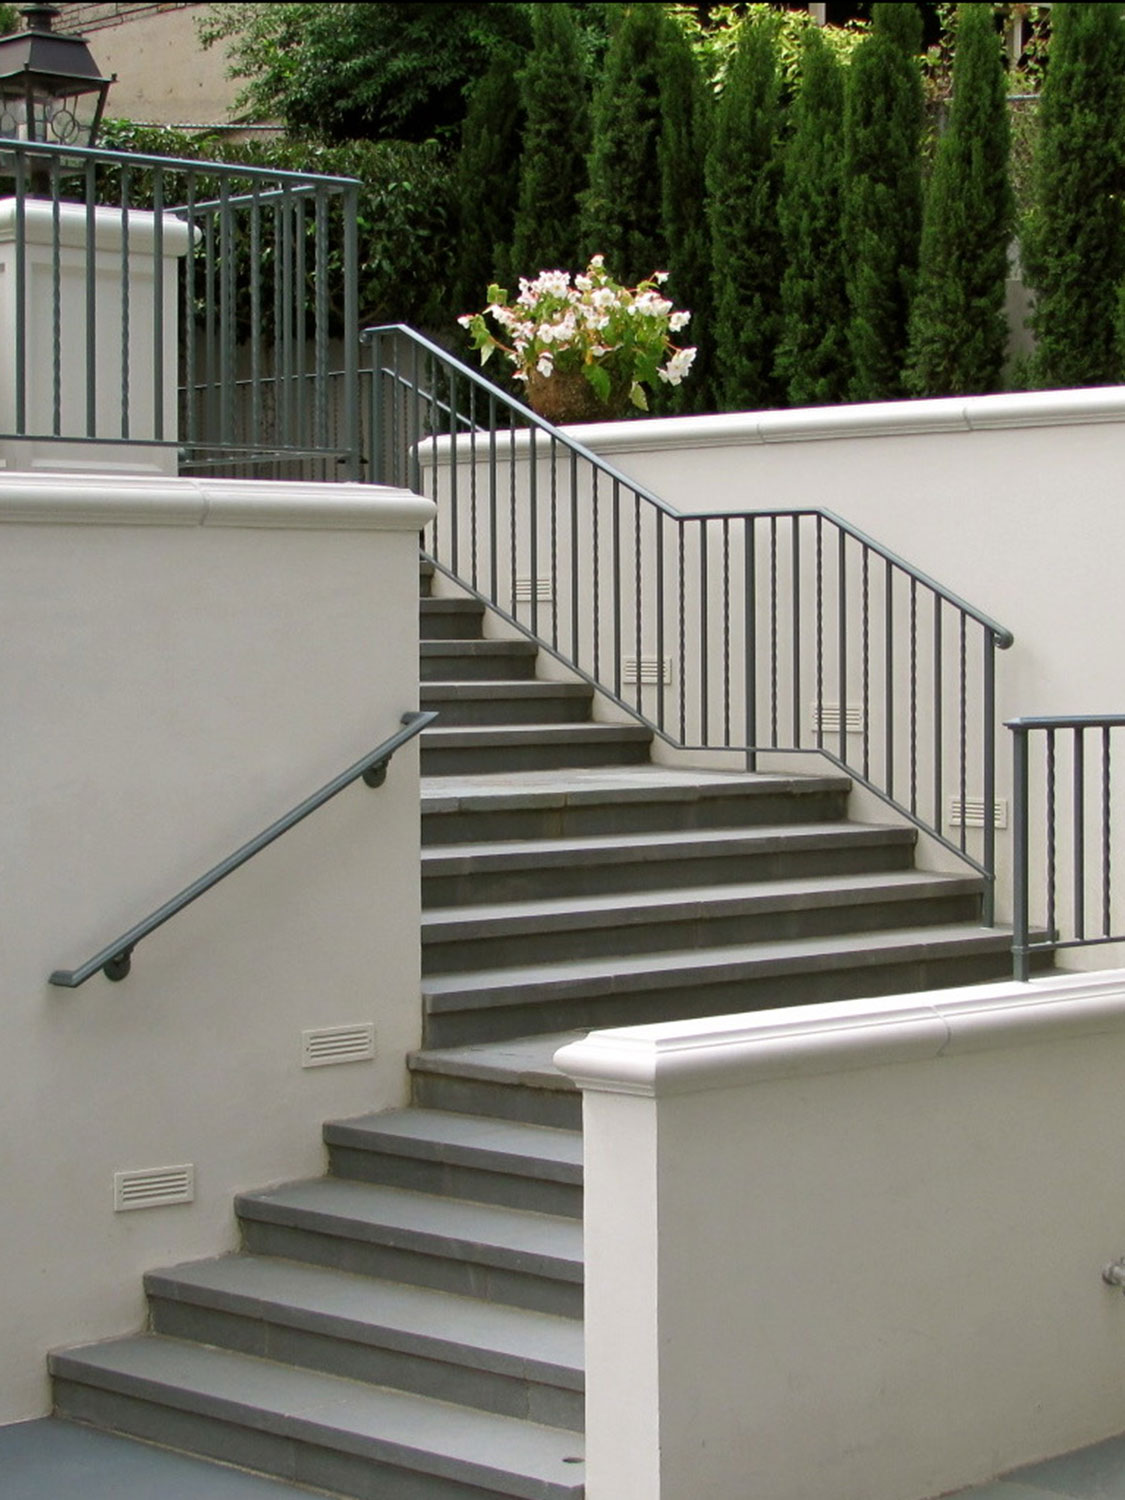 Iron Handrails and Guardrails for Slate Patio - Featured Image